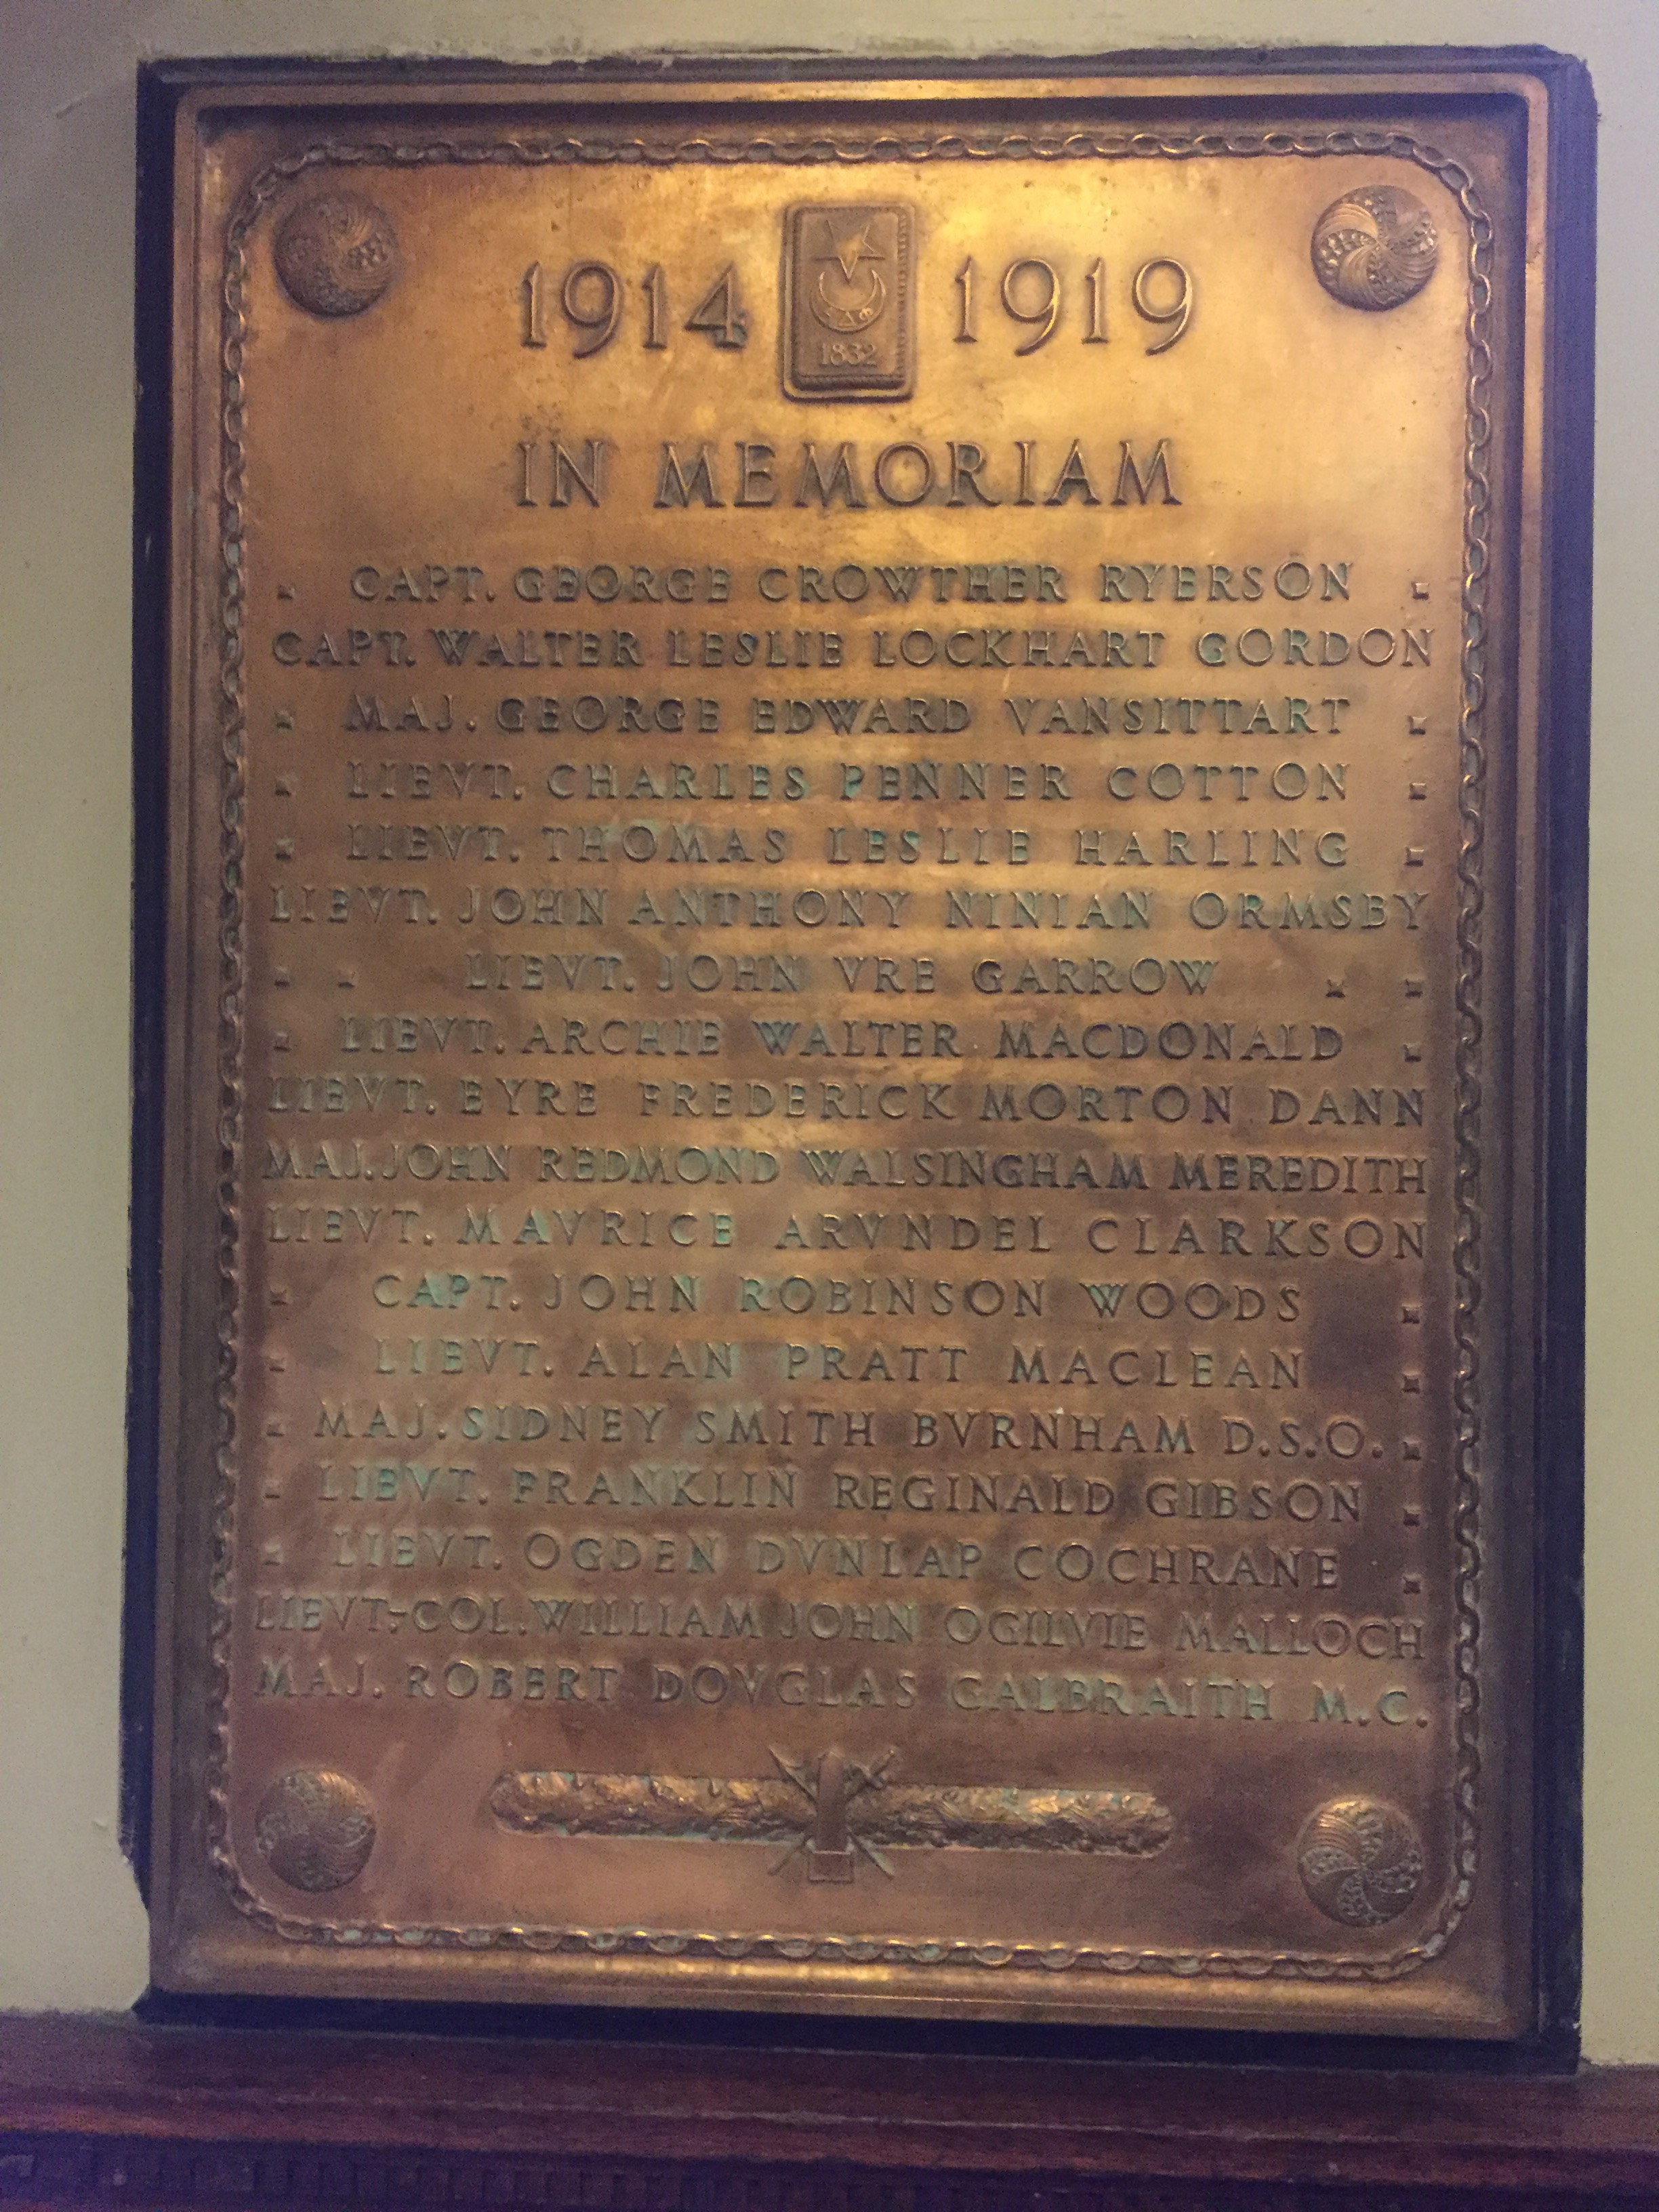 Memorial Plaque – Memorial Plaque – Capt. Walter Leslie Lockhart Gordon is remembered on this bronze memorial plaque. The plaque is found in the foyer of the Alpha Delta Phi Chapter House at 94 Prince Arthur Avenue, Toronto, ON.